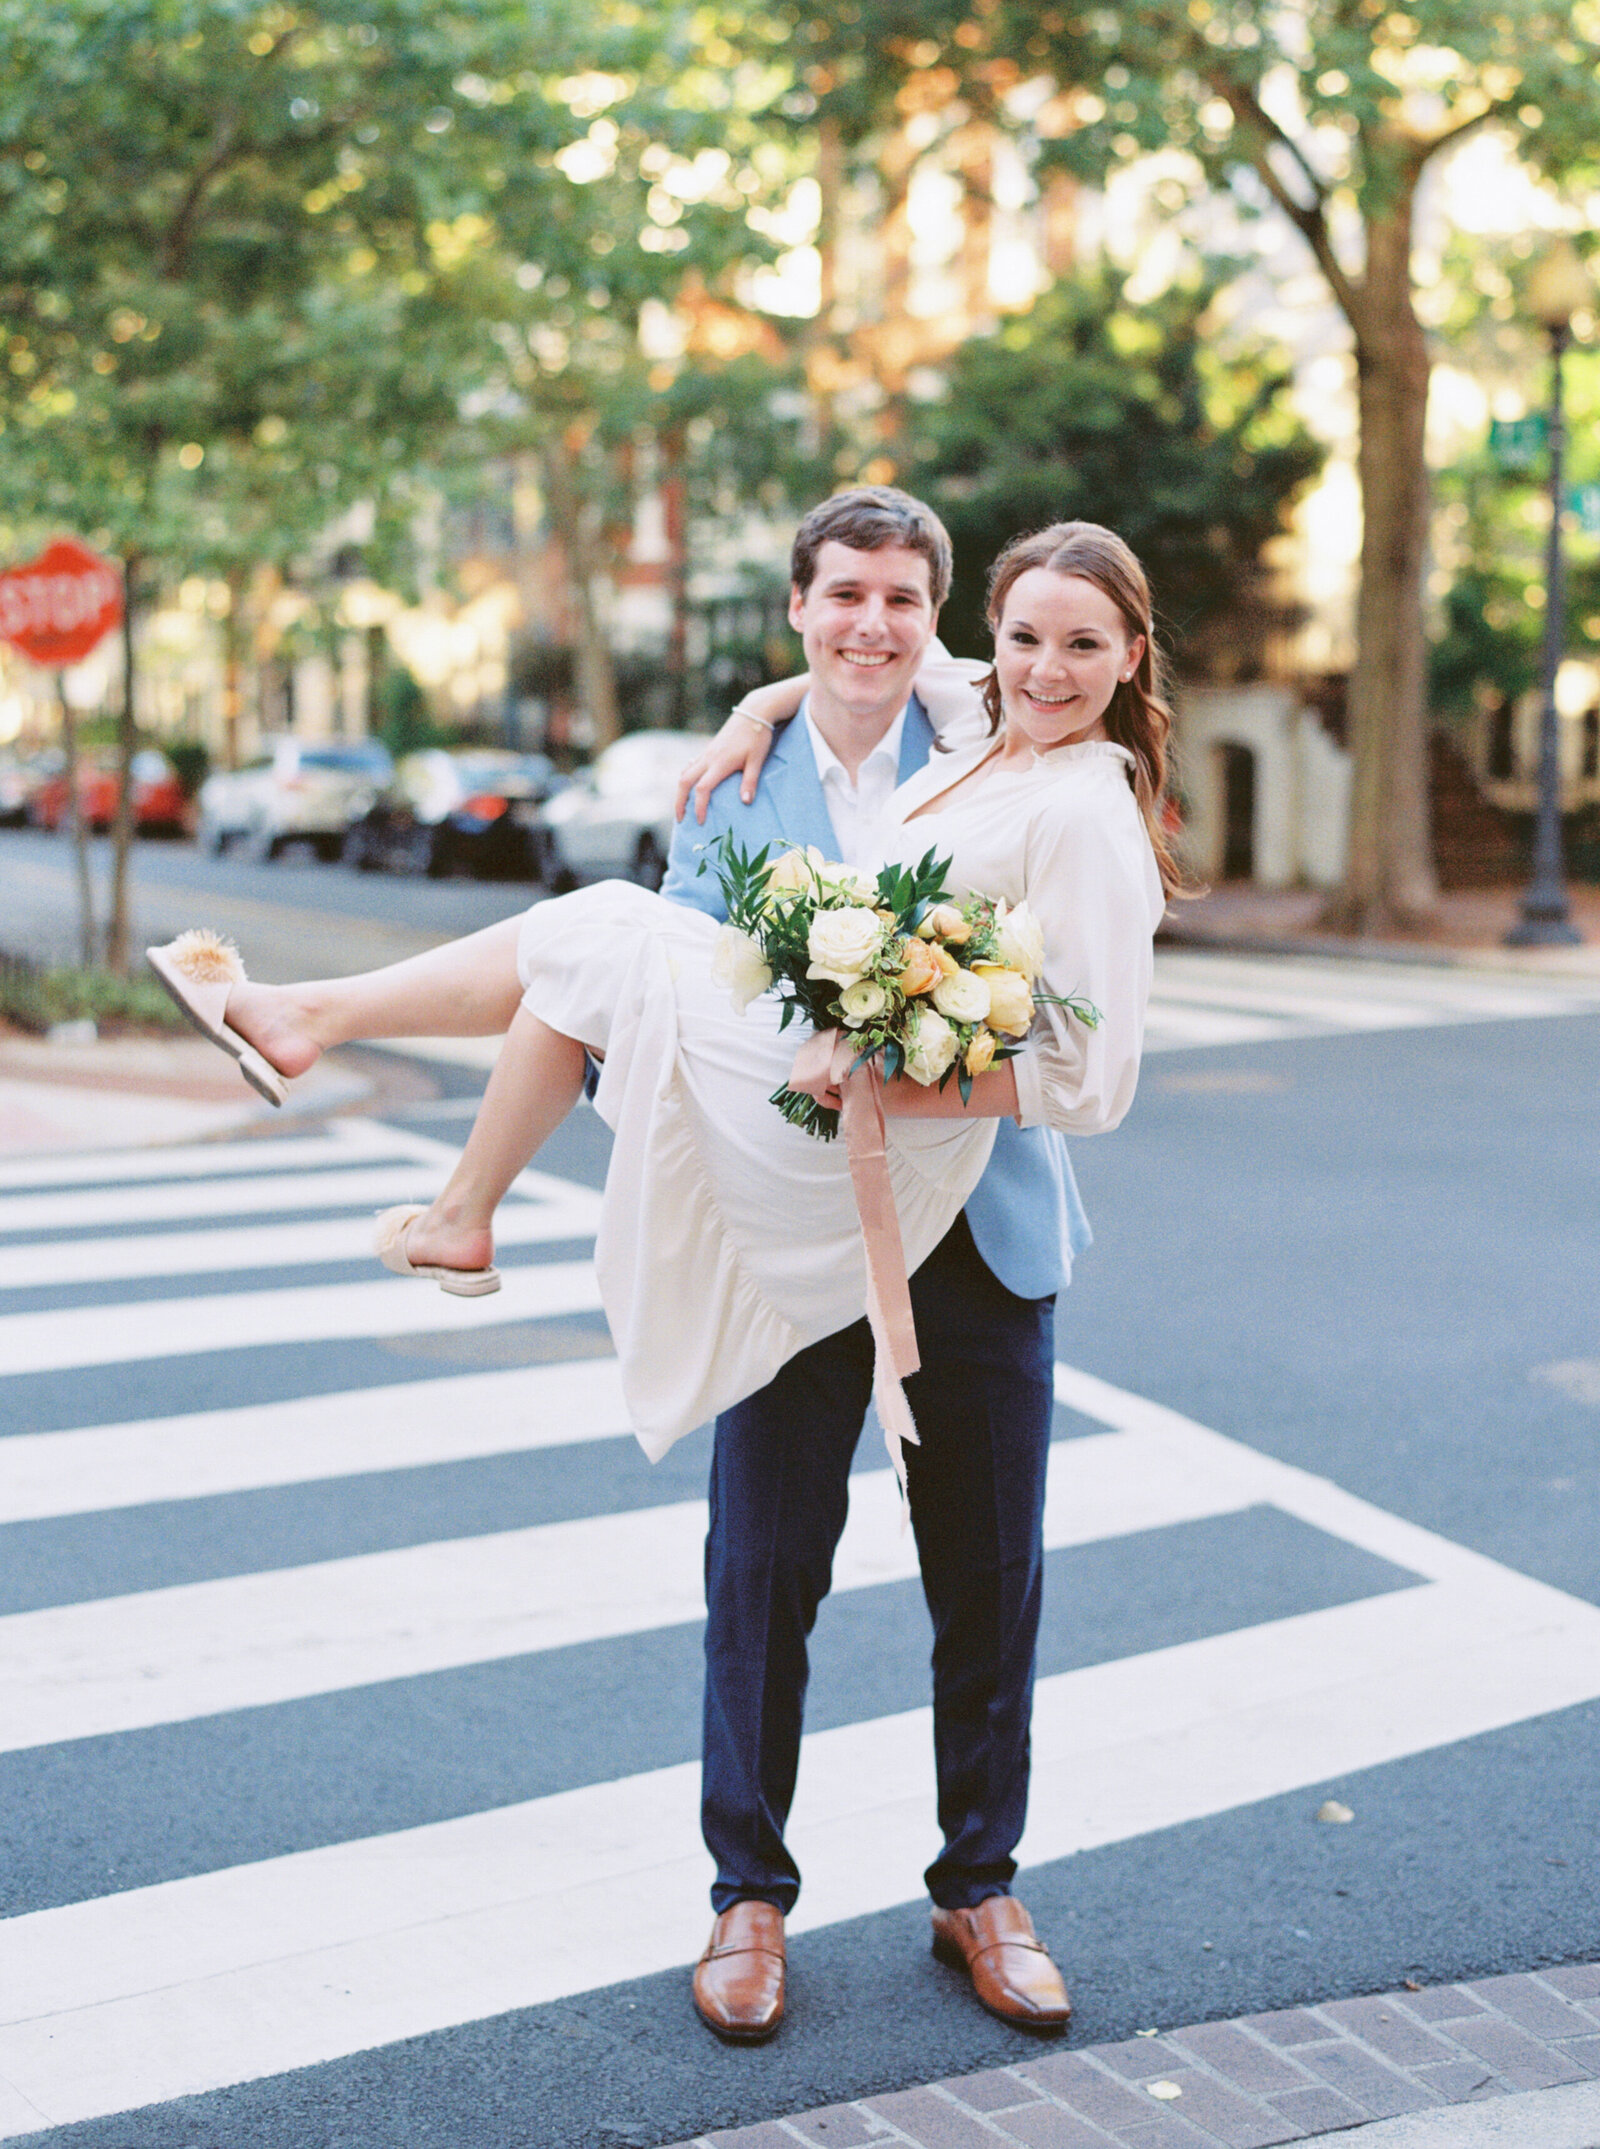 Klaire-Dixius-Photography-Tudor-Place-Washington-DC-Engagement-Session-Luke-Rachel-film85